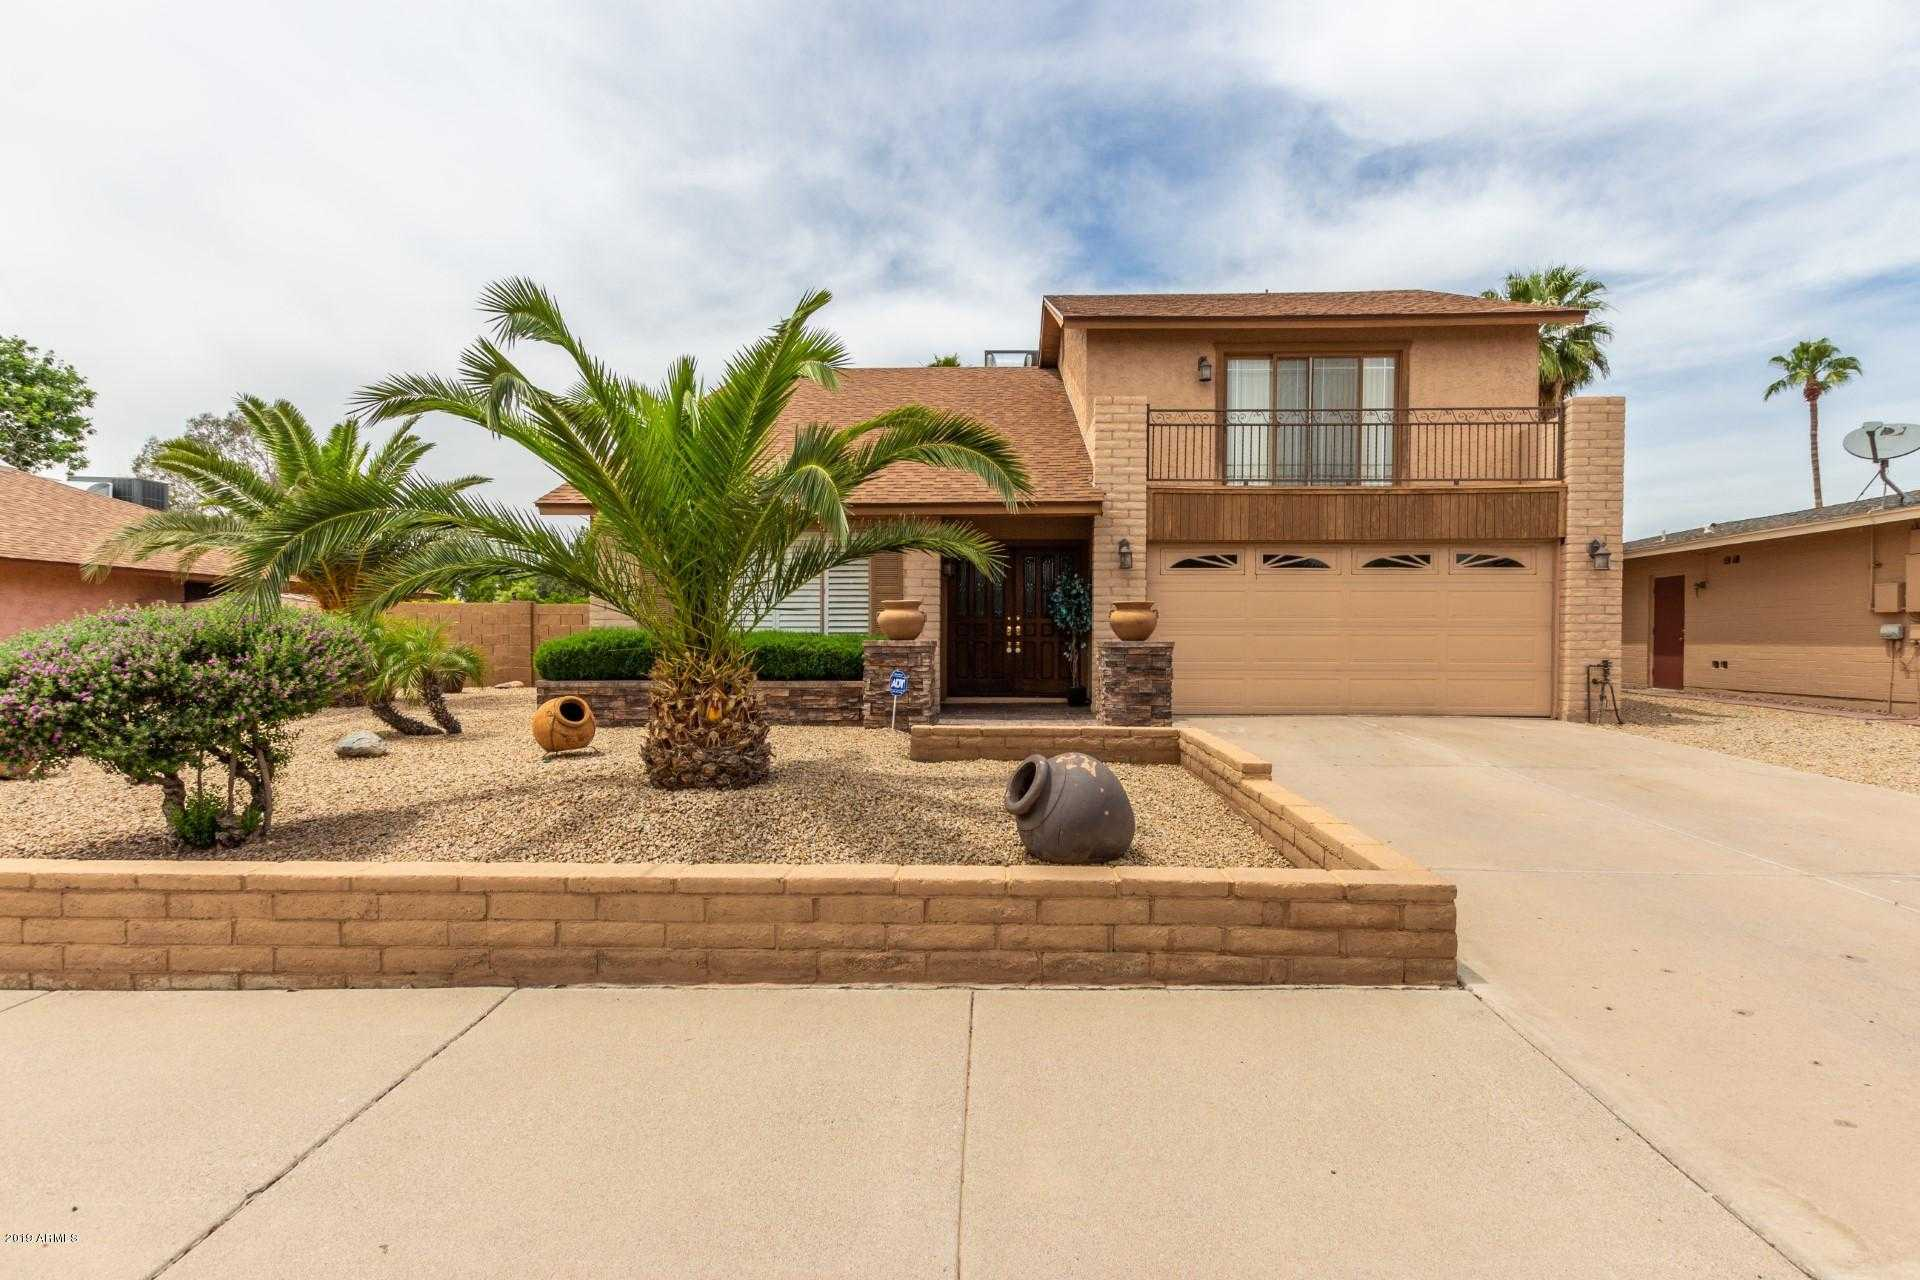 $294,500 - 4Br/3Ba - Home for Sale in Bellair Unit 3 Lt 329-430 436-531 Tr 50 53-63, Glendale